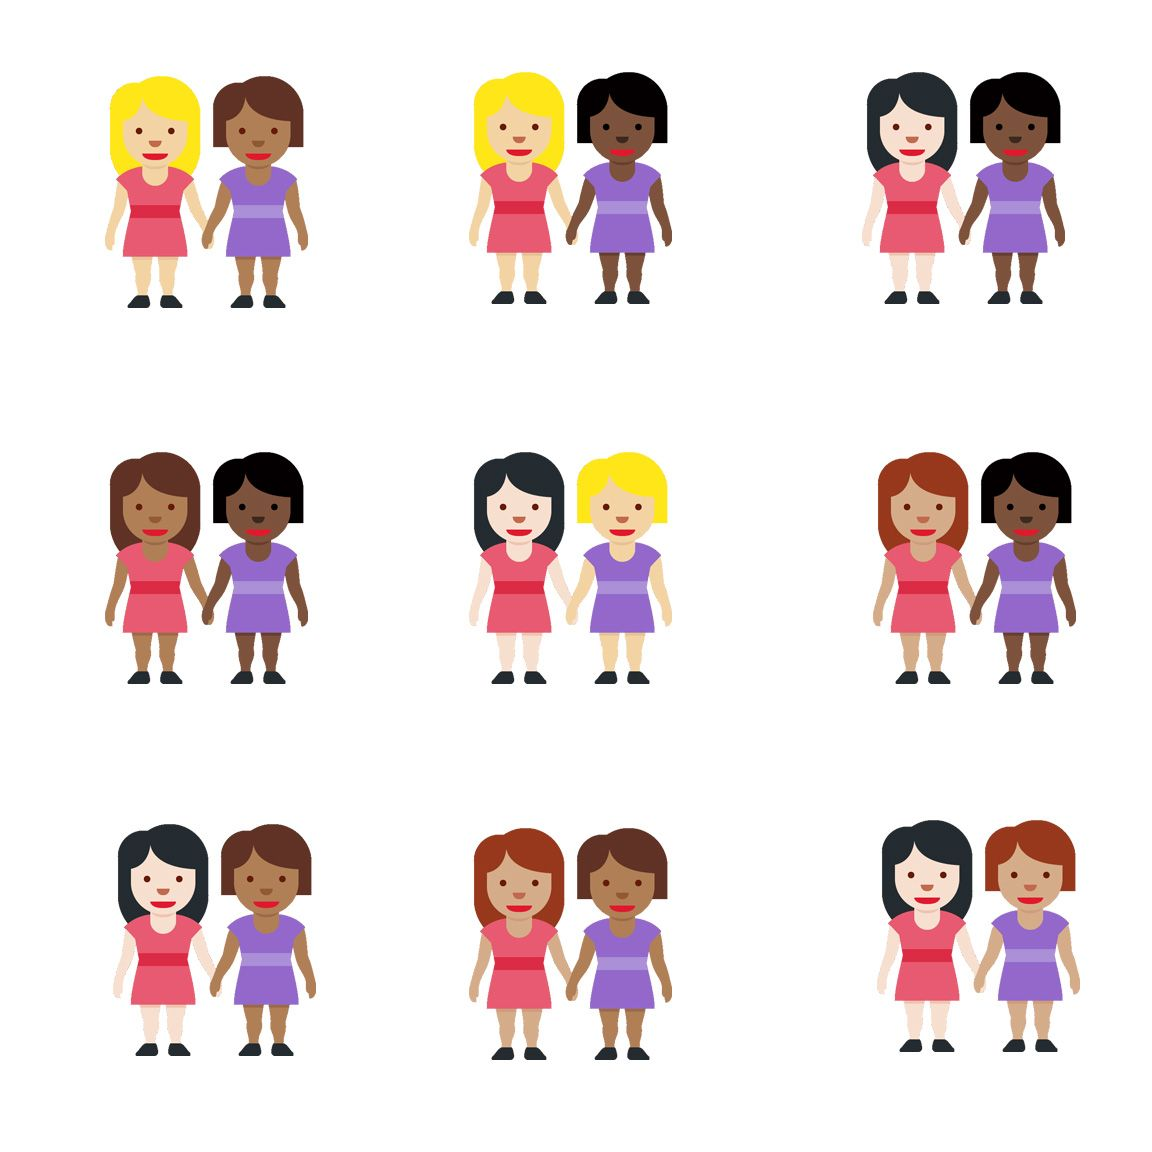 Emojipedia-Twemoji-12.3-Women-Holding-Hands